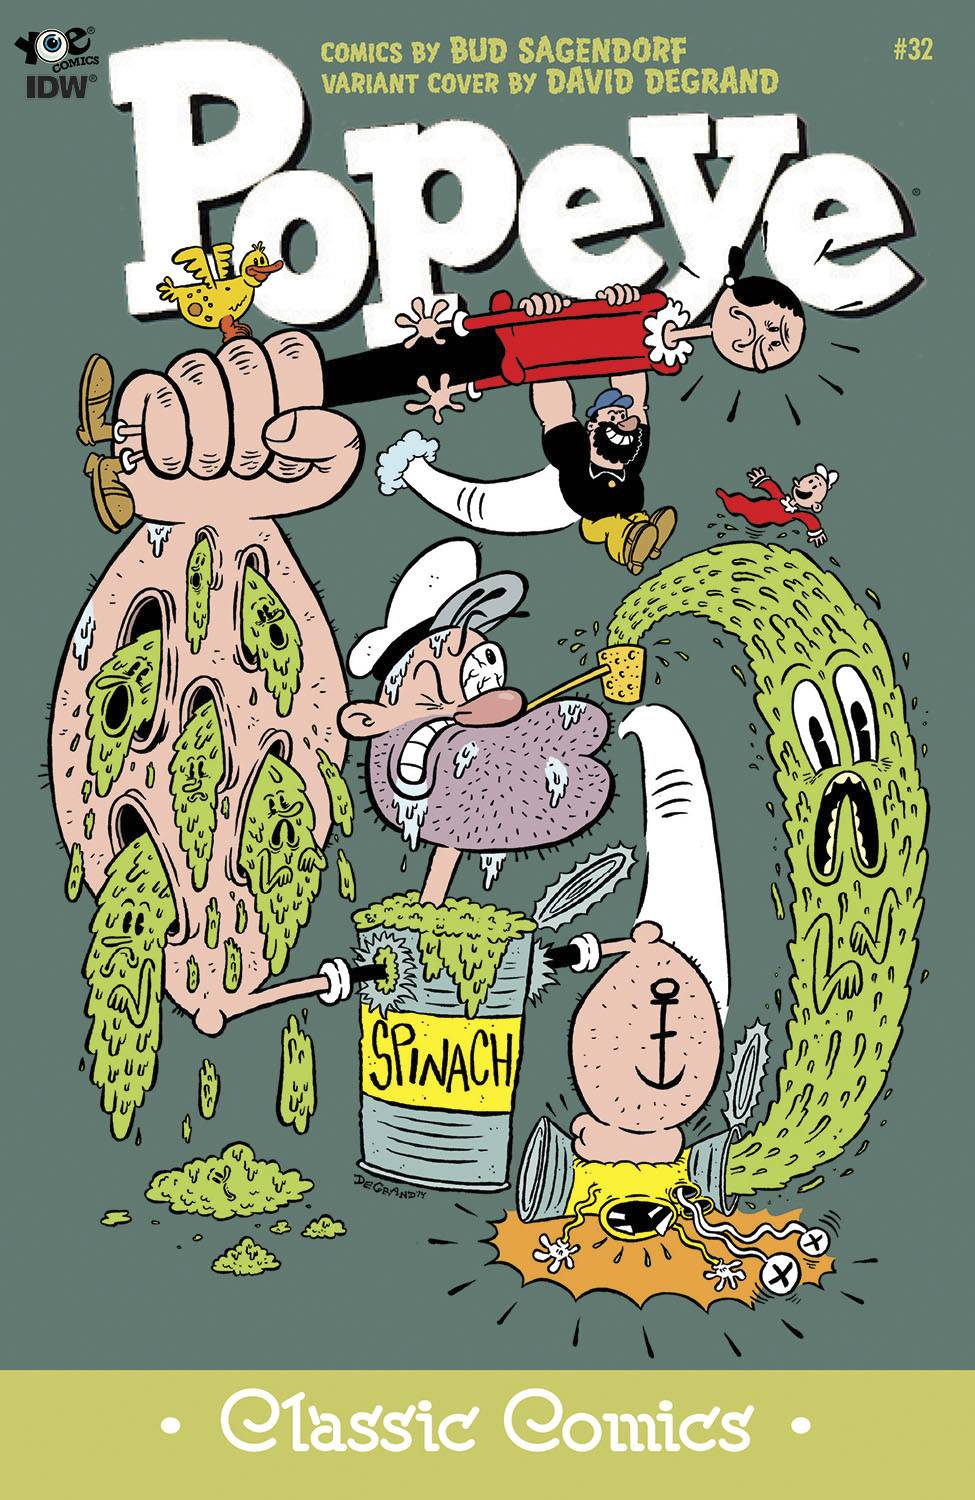 David DeGrand, Popeye cover